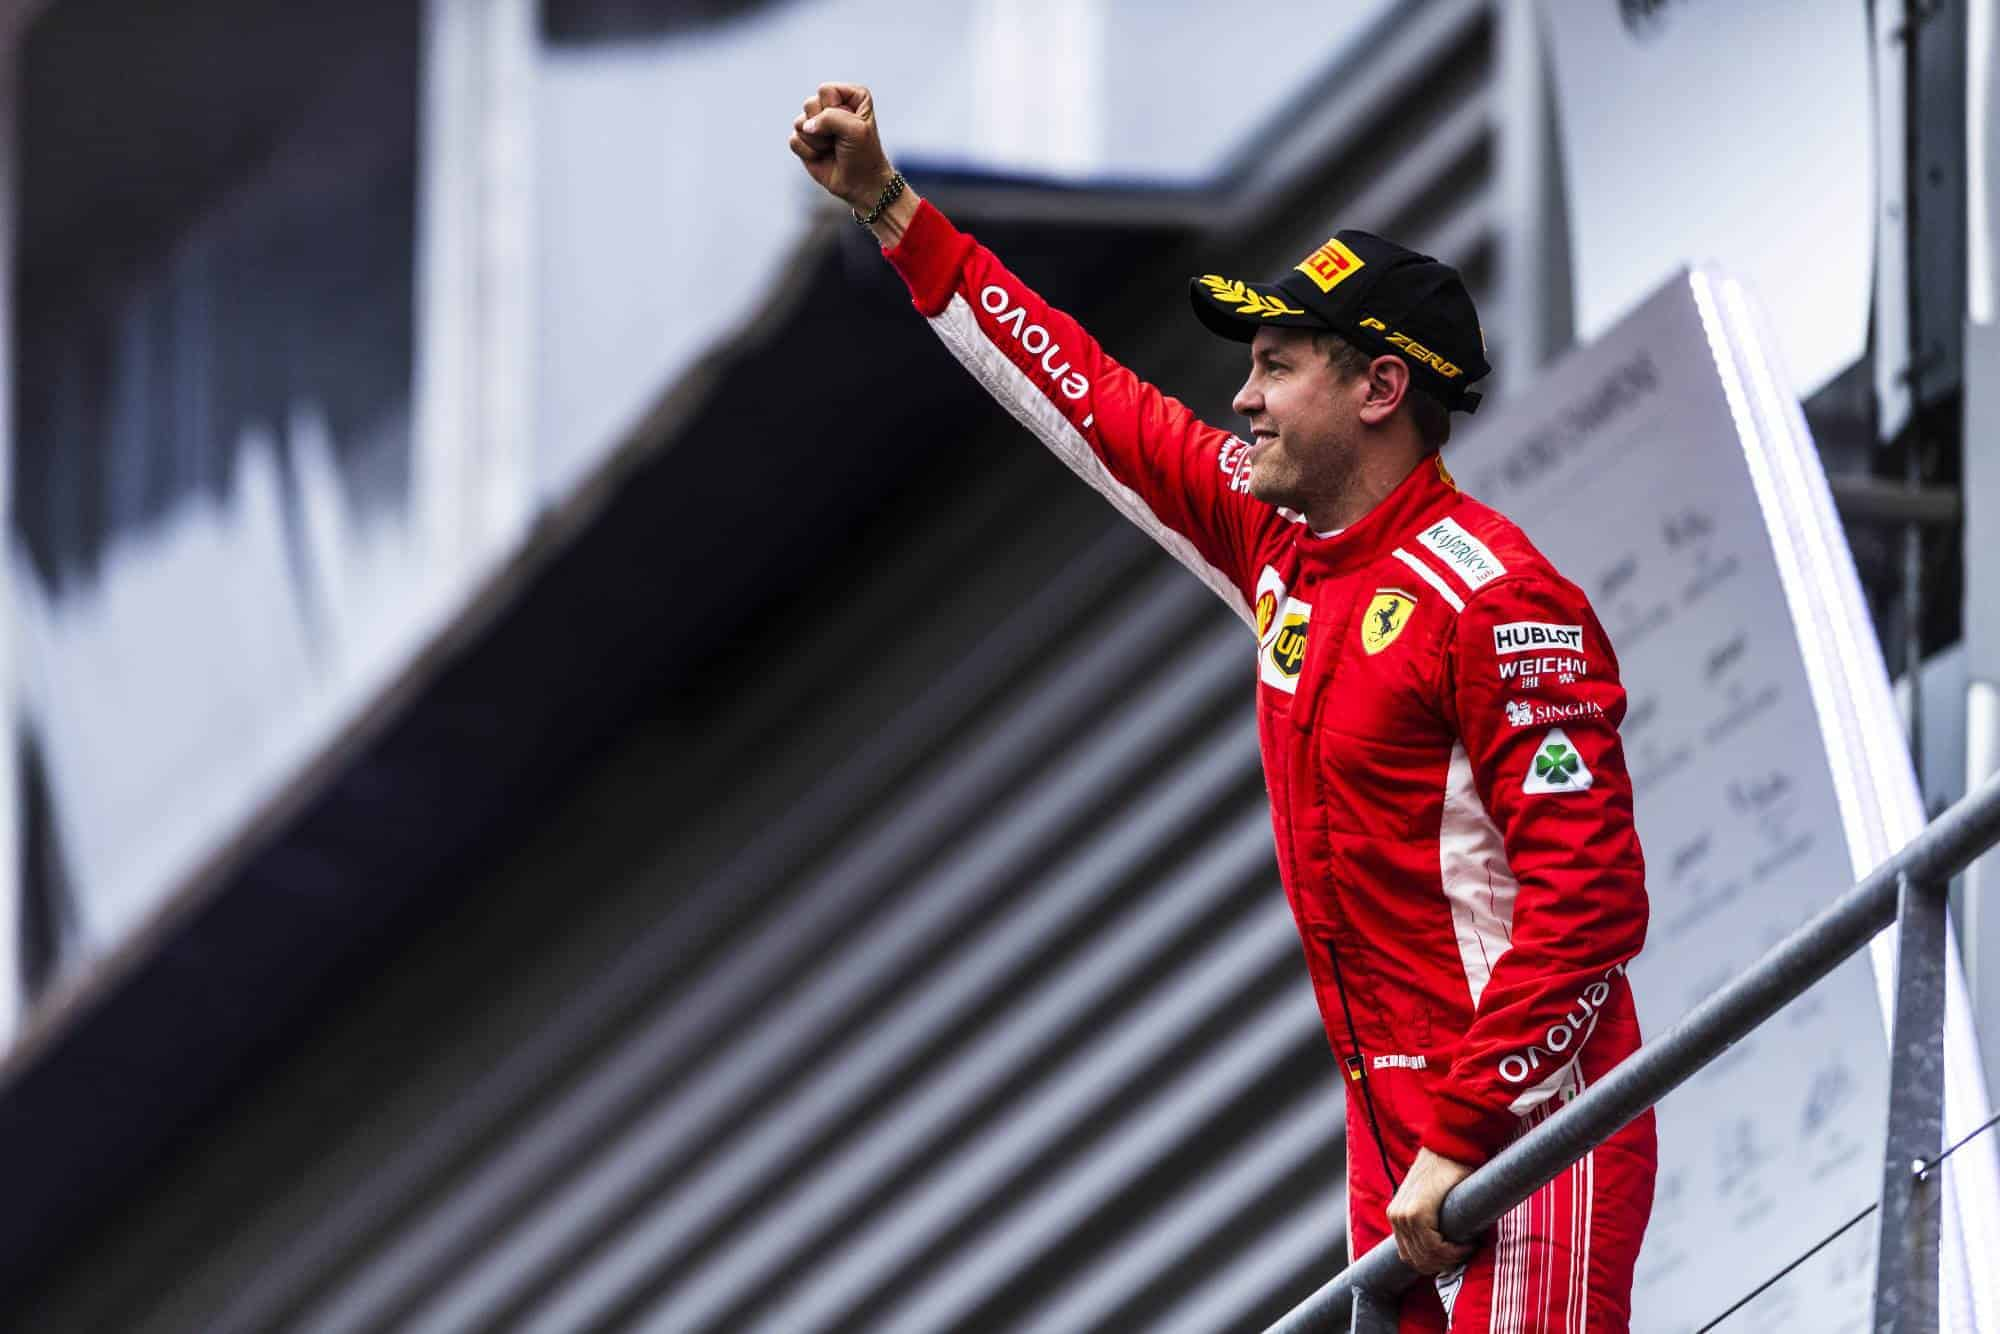 Sebastian Vettel Ferrari SF71H Belgian GP F1 2018 podium celebration Photo Ferrari